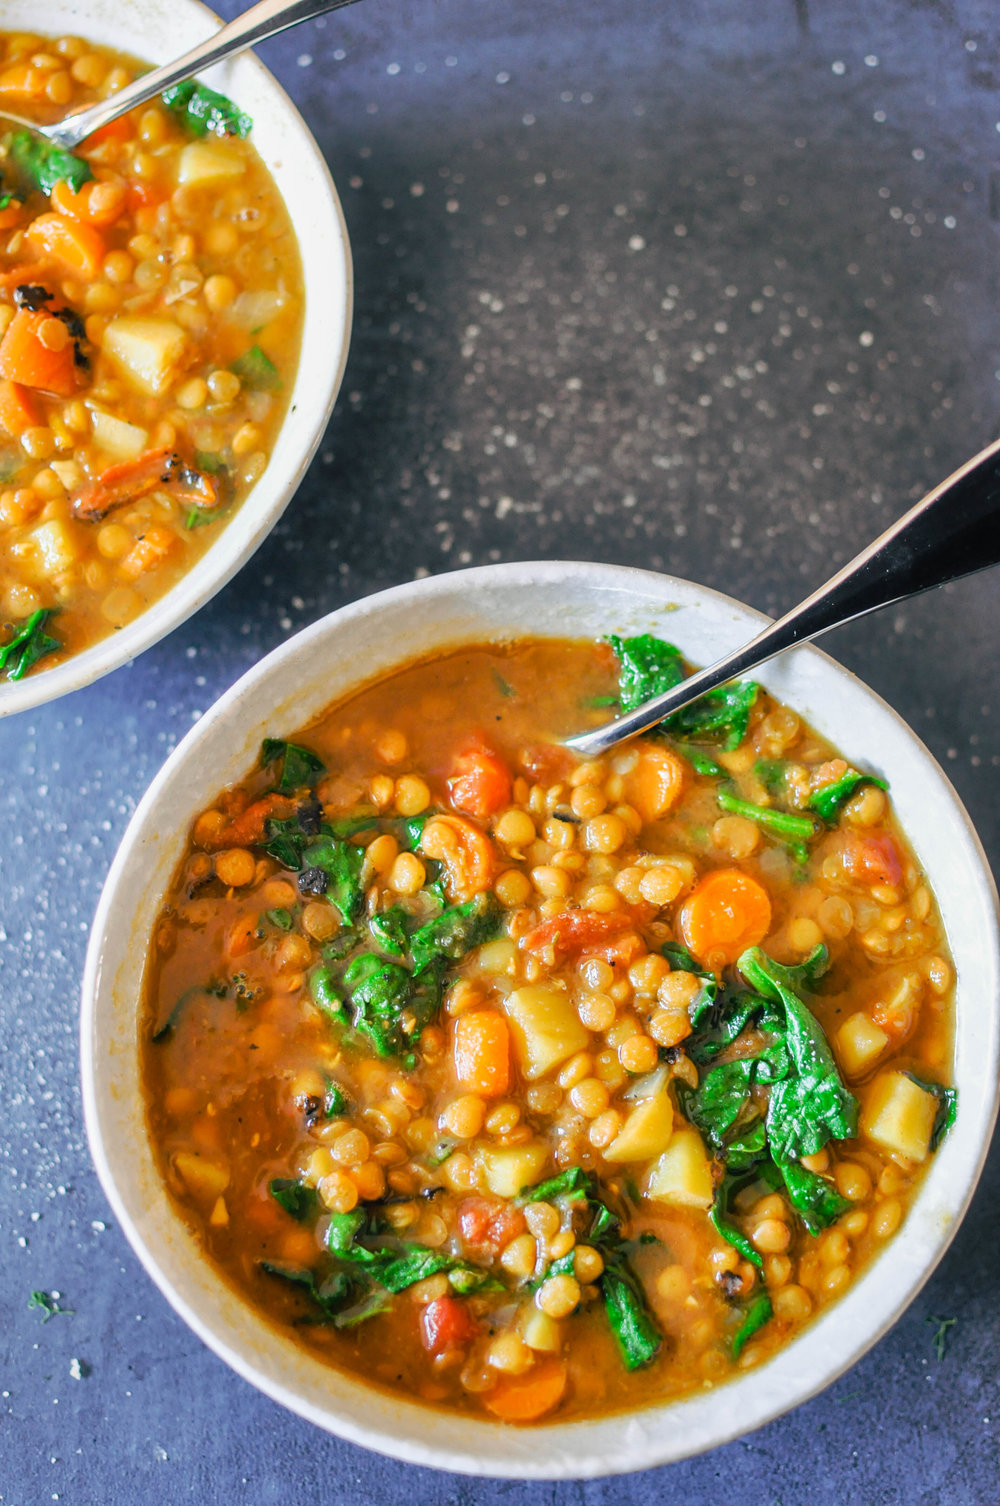 Vegan Lentil Soup with Carrots & Potatoes. This soup is super-simple to make and yields several servings of delicious vegan goodness.